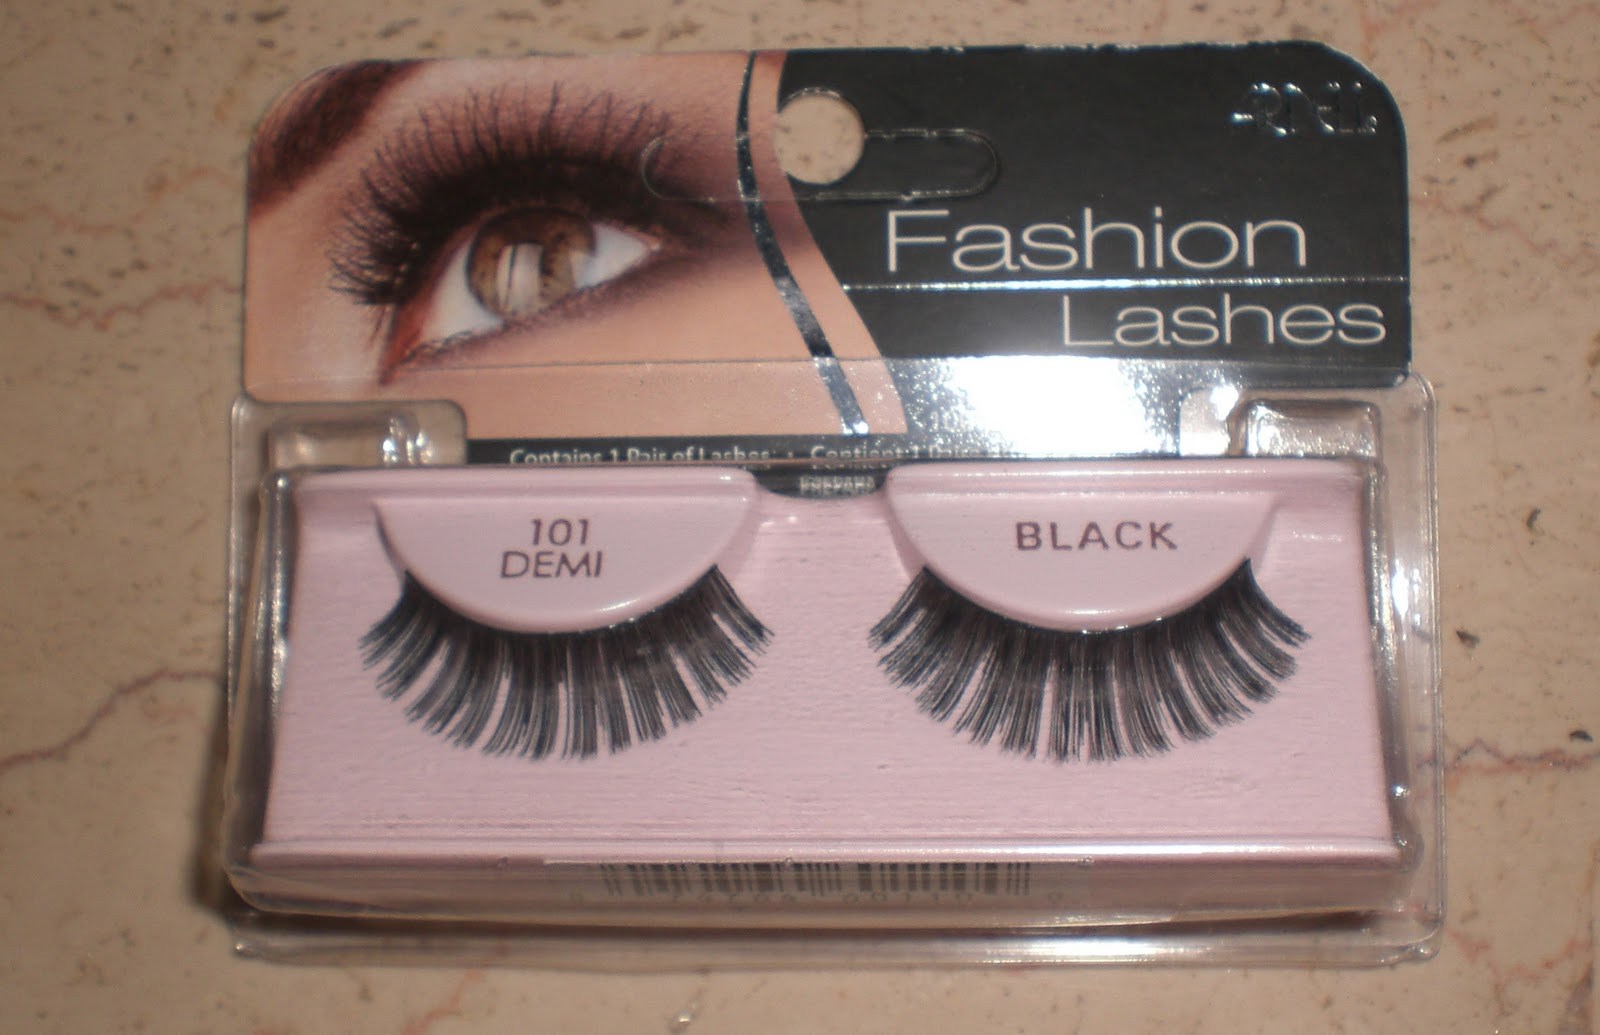 Ardell fashion lashes #101 demi